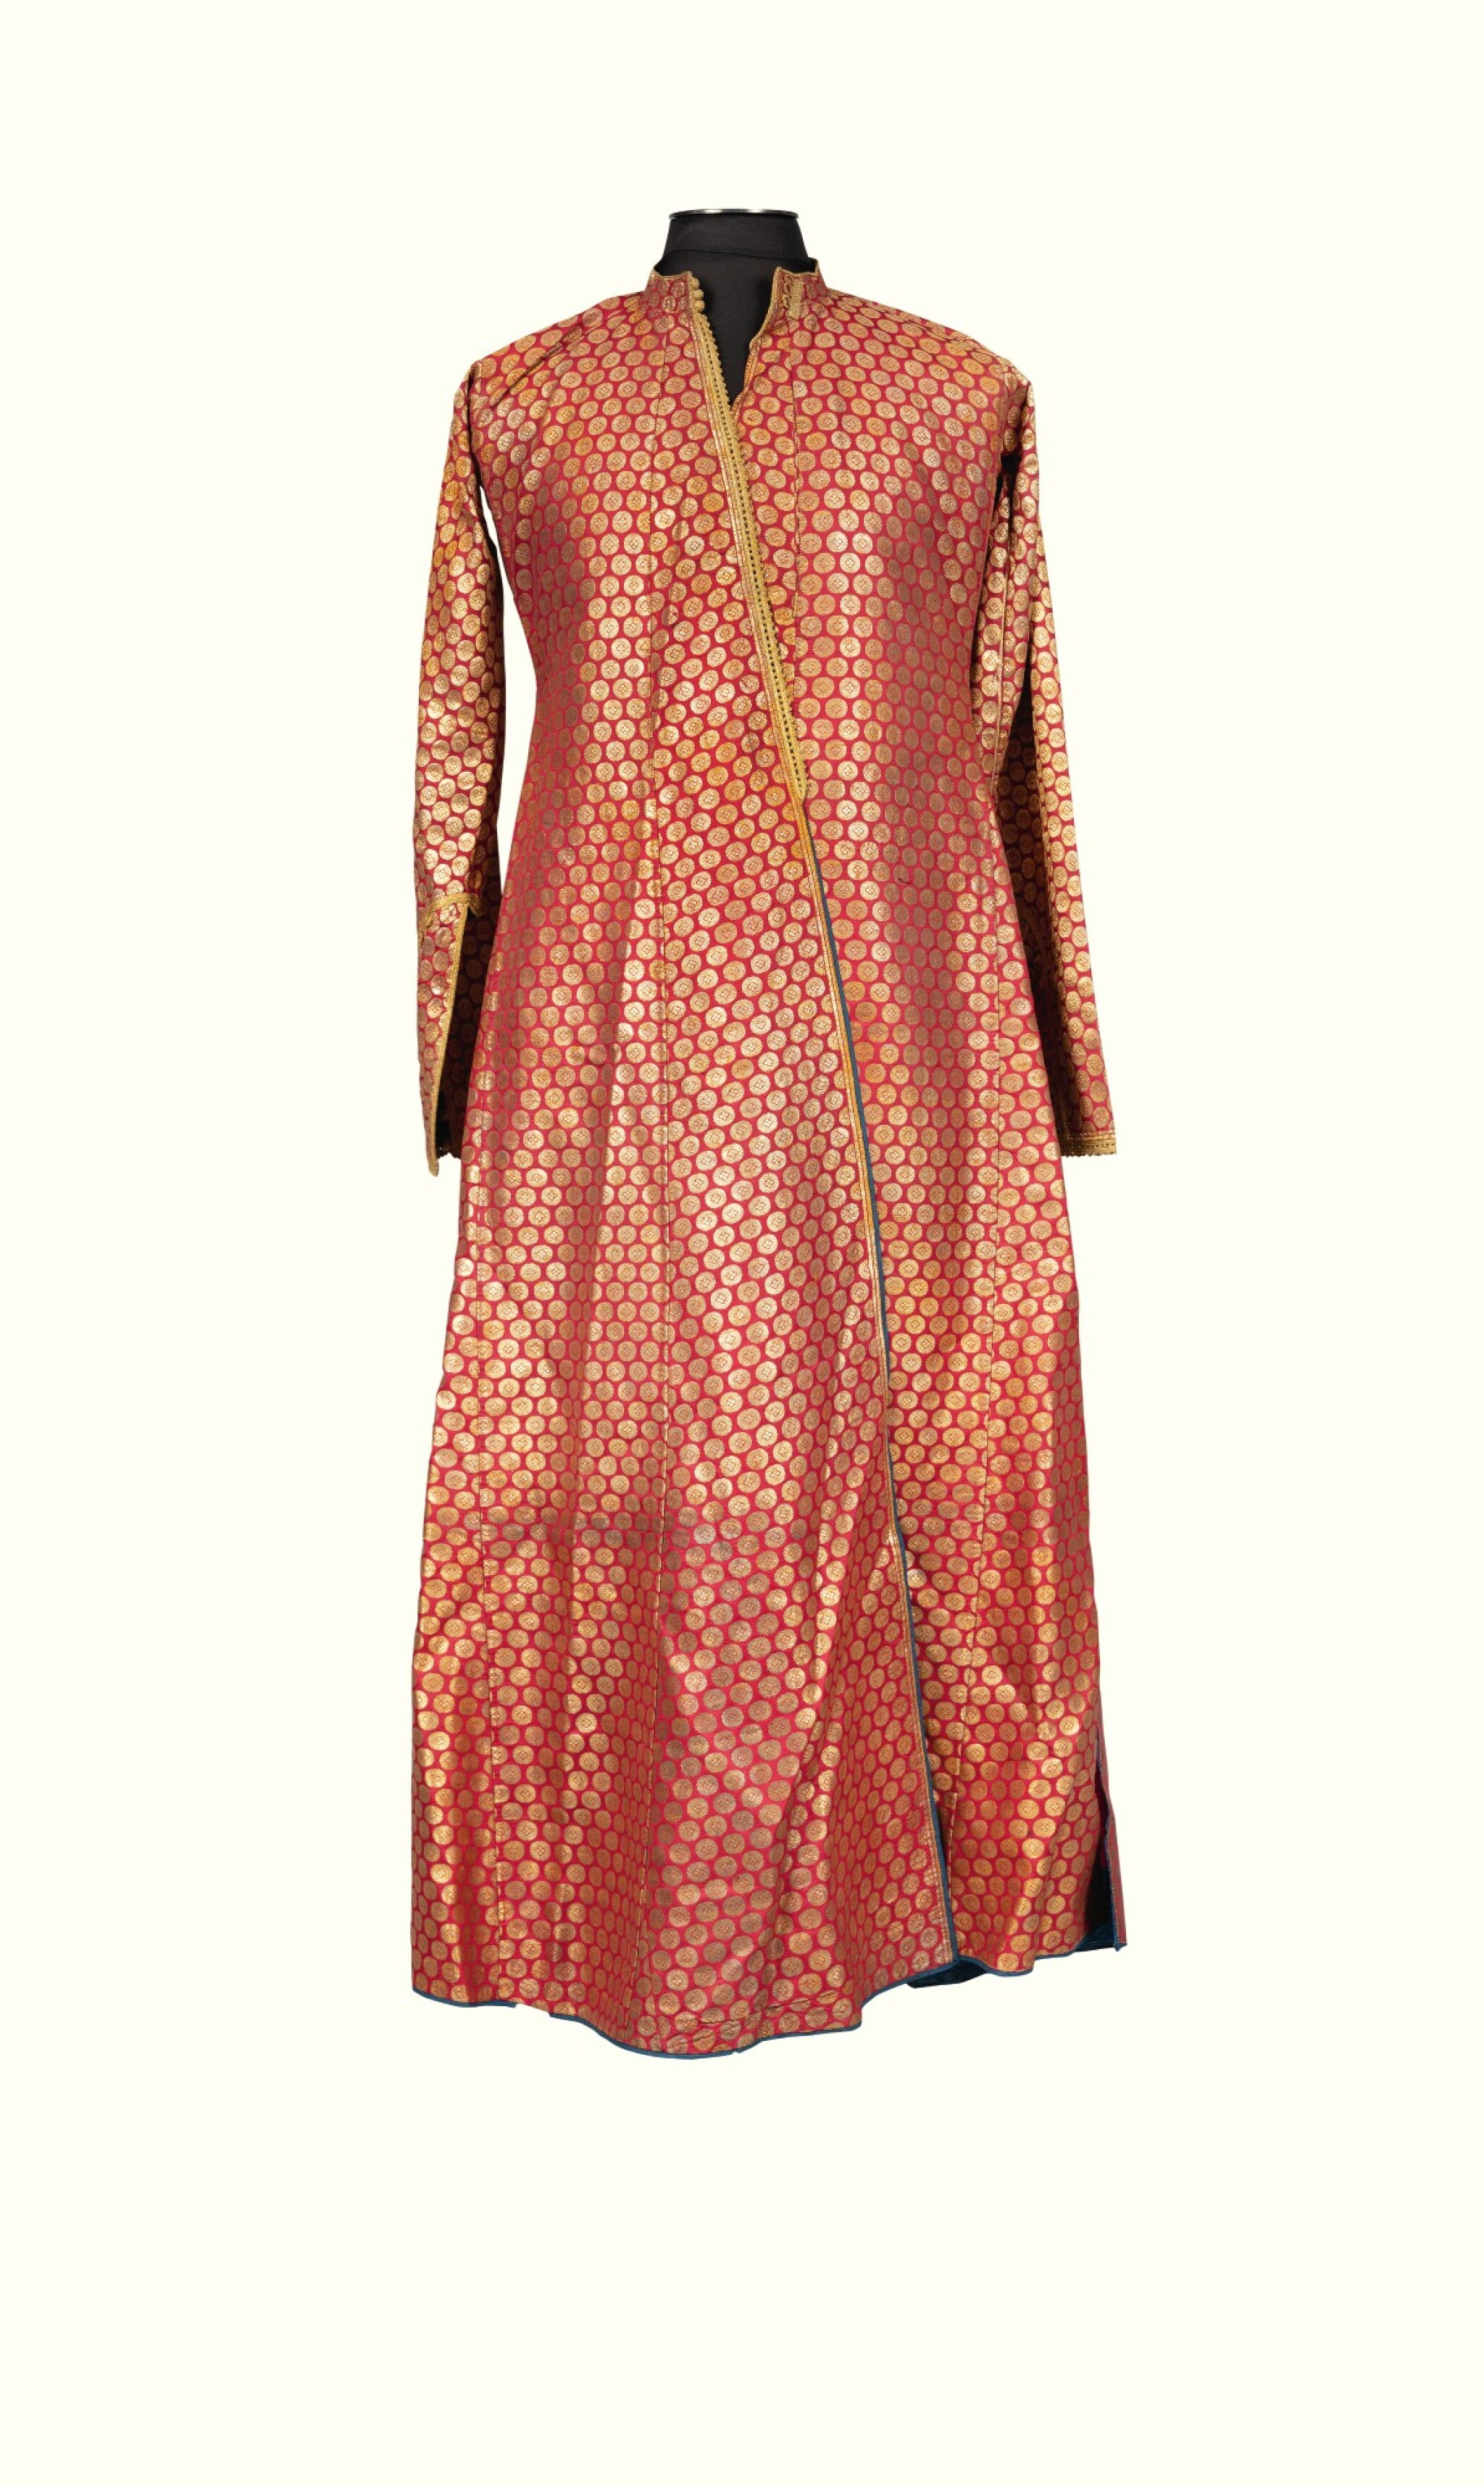 View full screen - View 1 of Lot 5. A SUMPTUOUS WEDDING ROBE FOR A GROOM, BOMBAY, 1853.